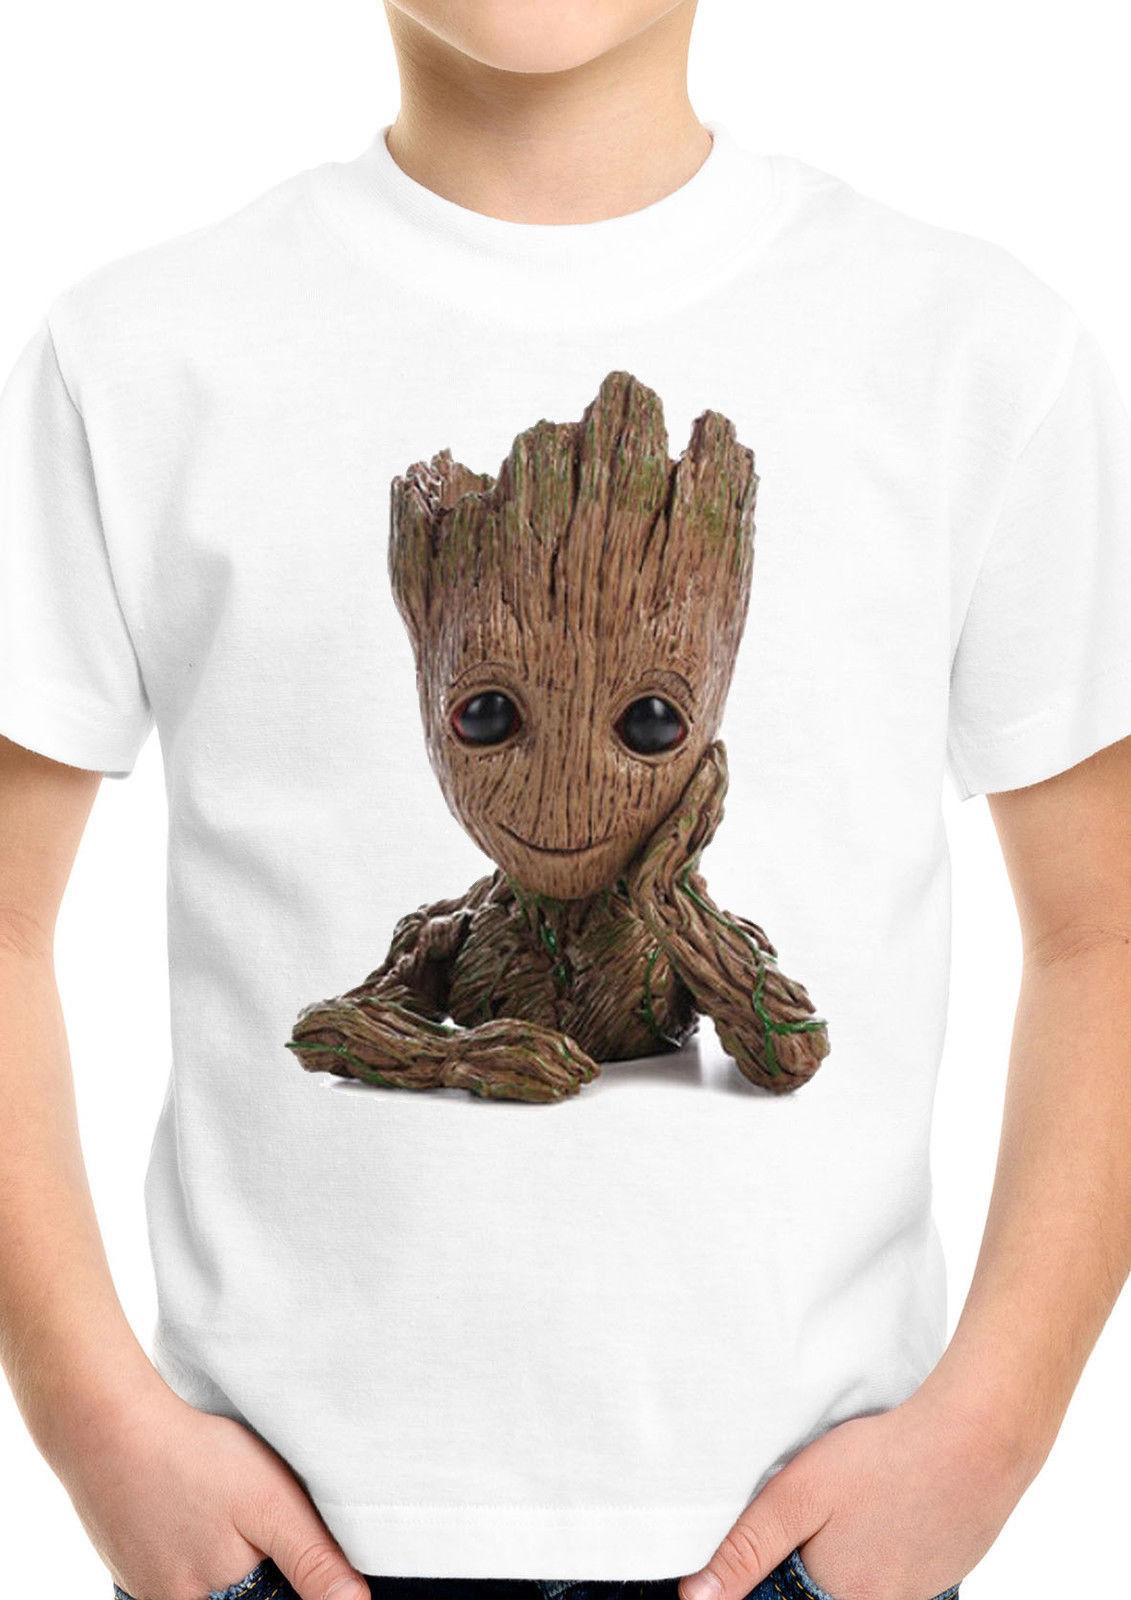 Groot Teddy Bear Superhero Kids T Shirt